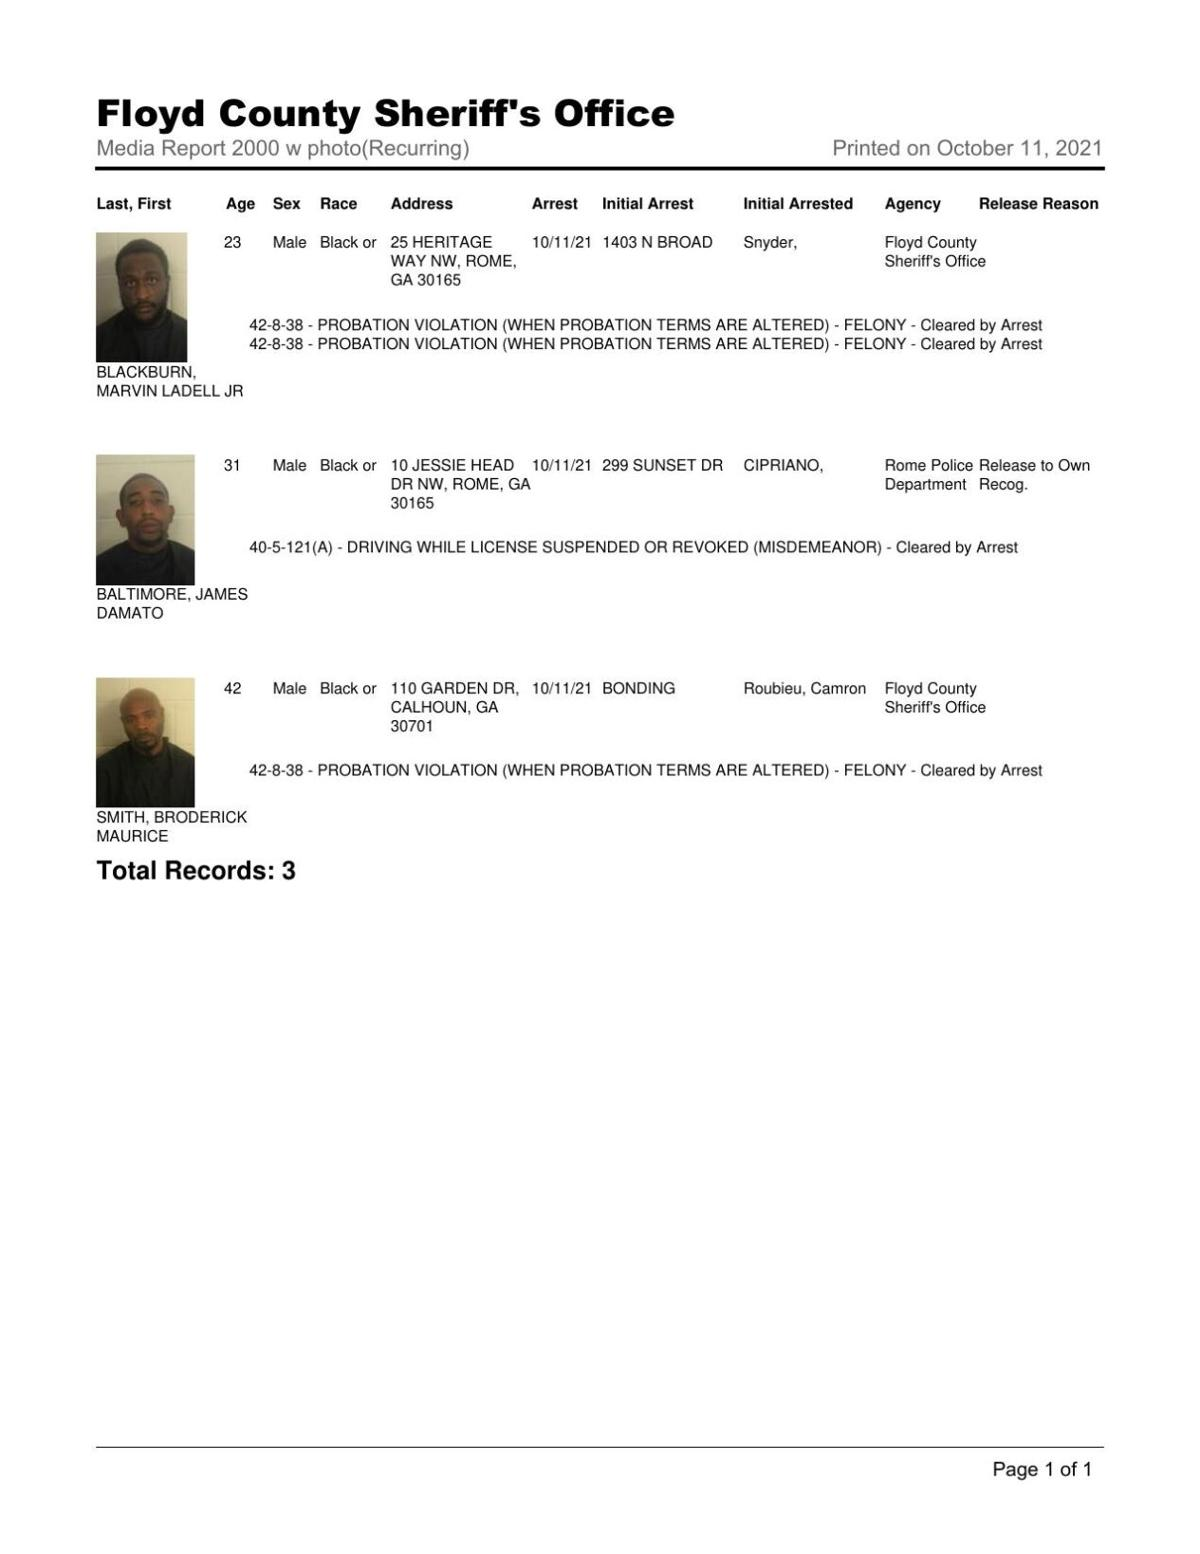 Floyd County Jail report for 8 pm Monday, Oct. 11